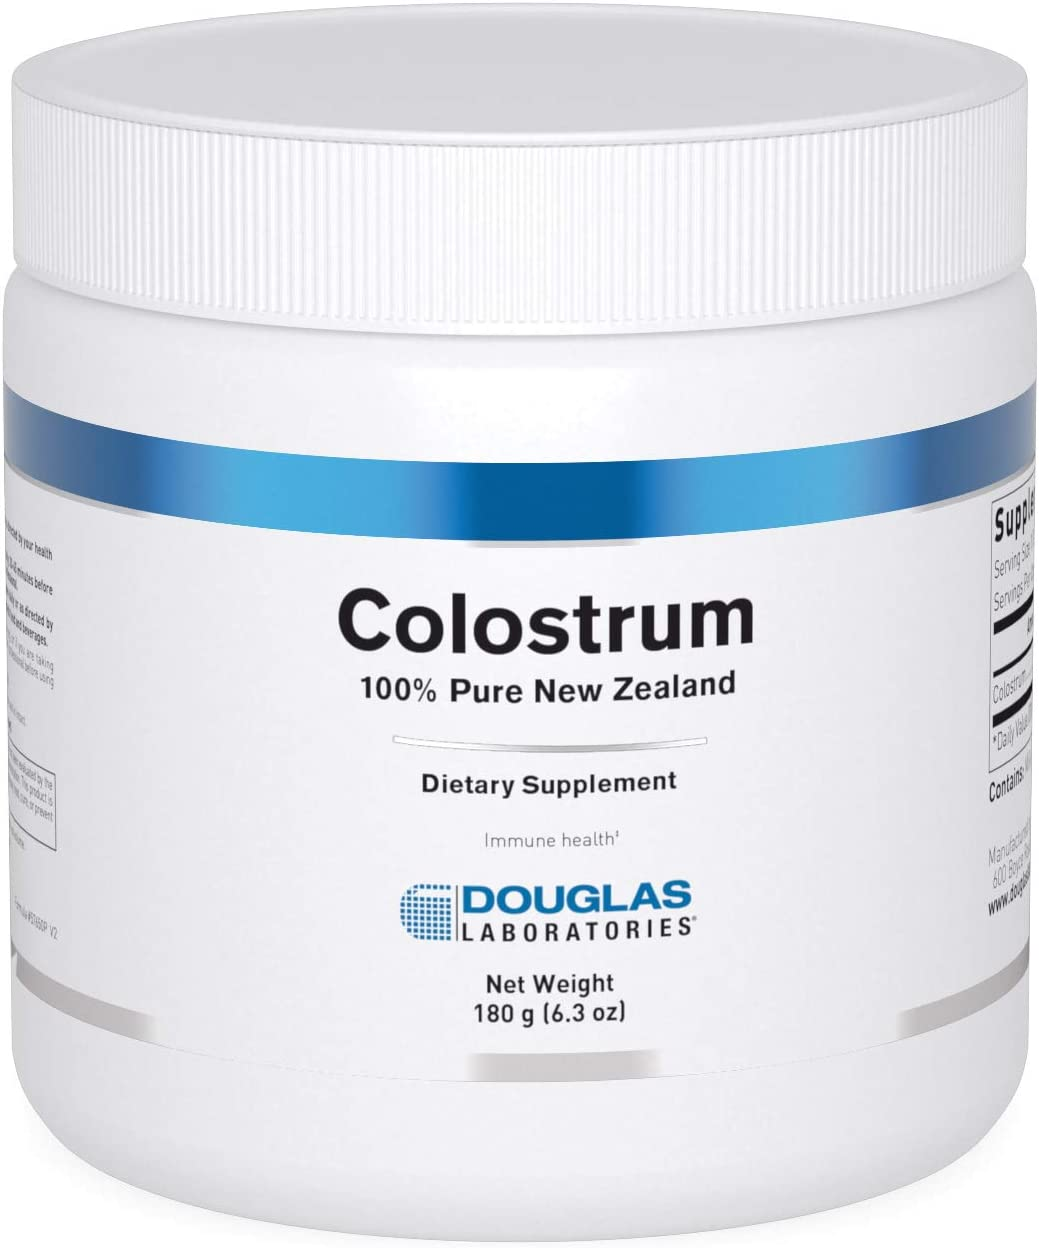 Douglas Laboratories - Colostrum 100% Pure New Zealand - Supports Immunity and Gastrointestinal Health - 6.35 Ounces